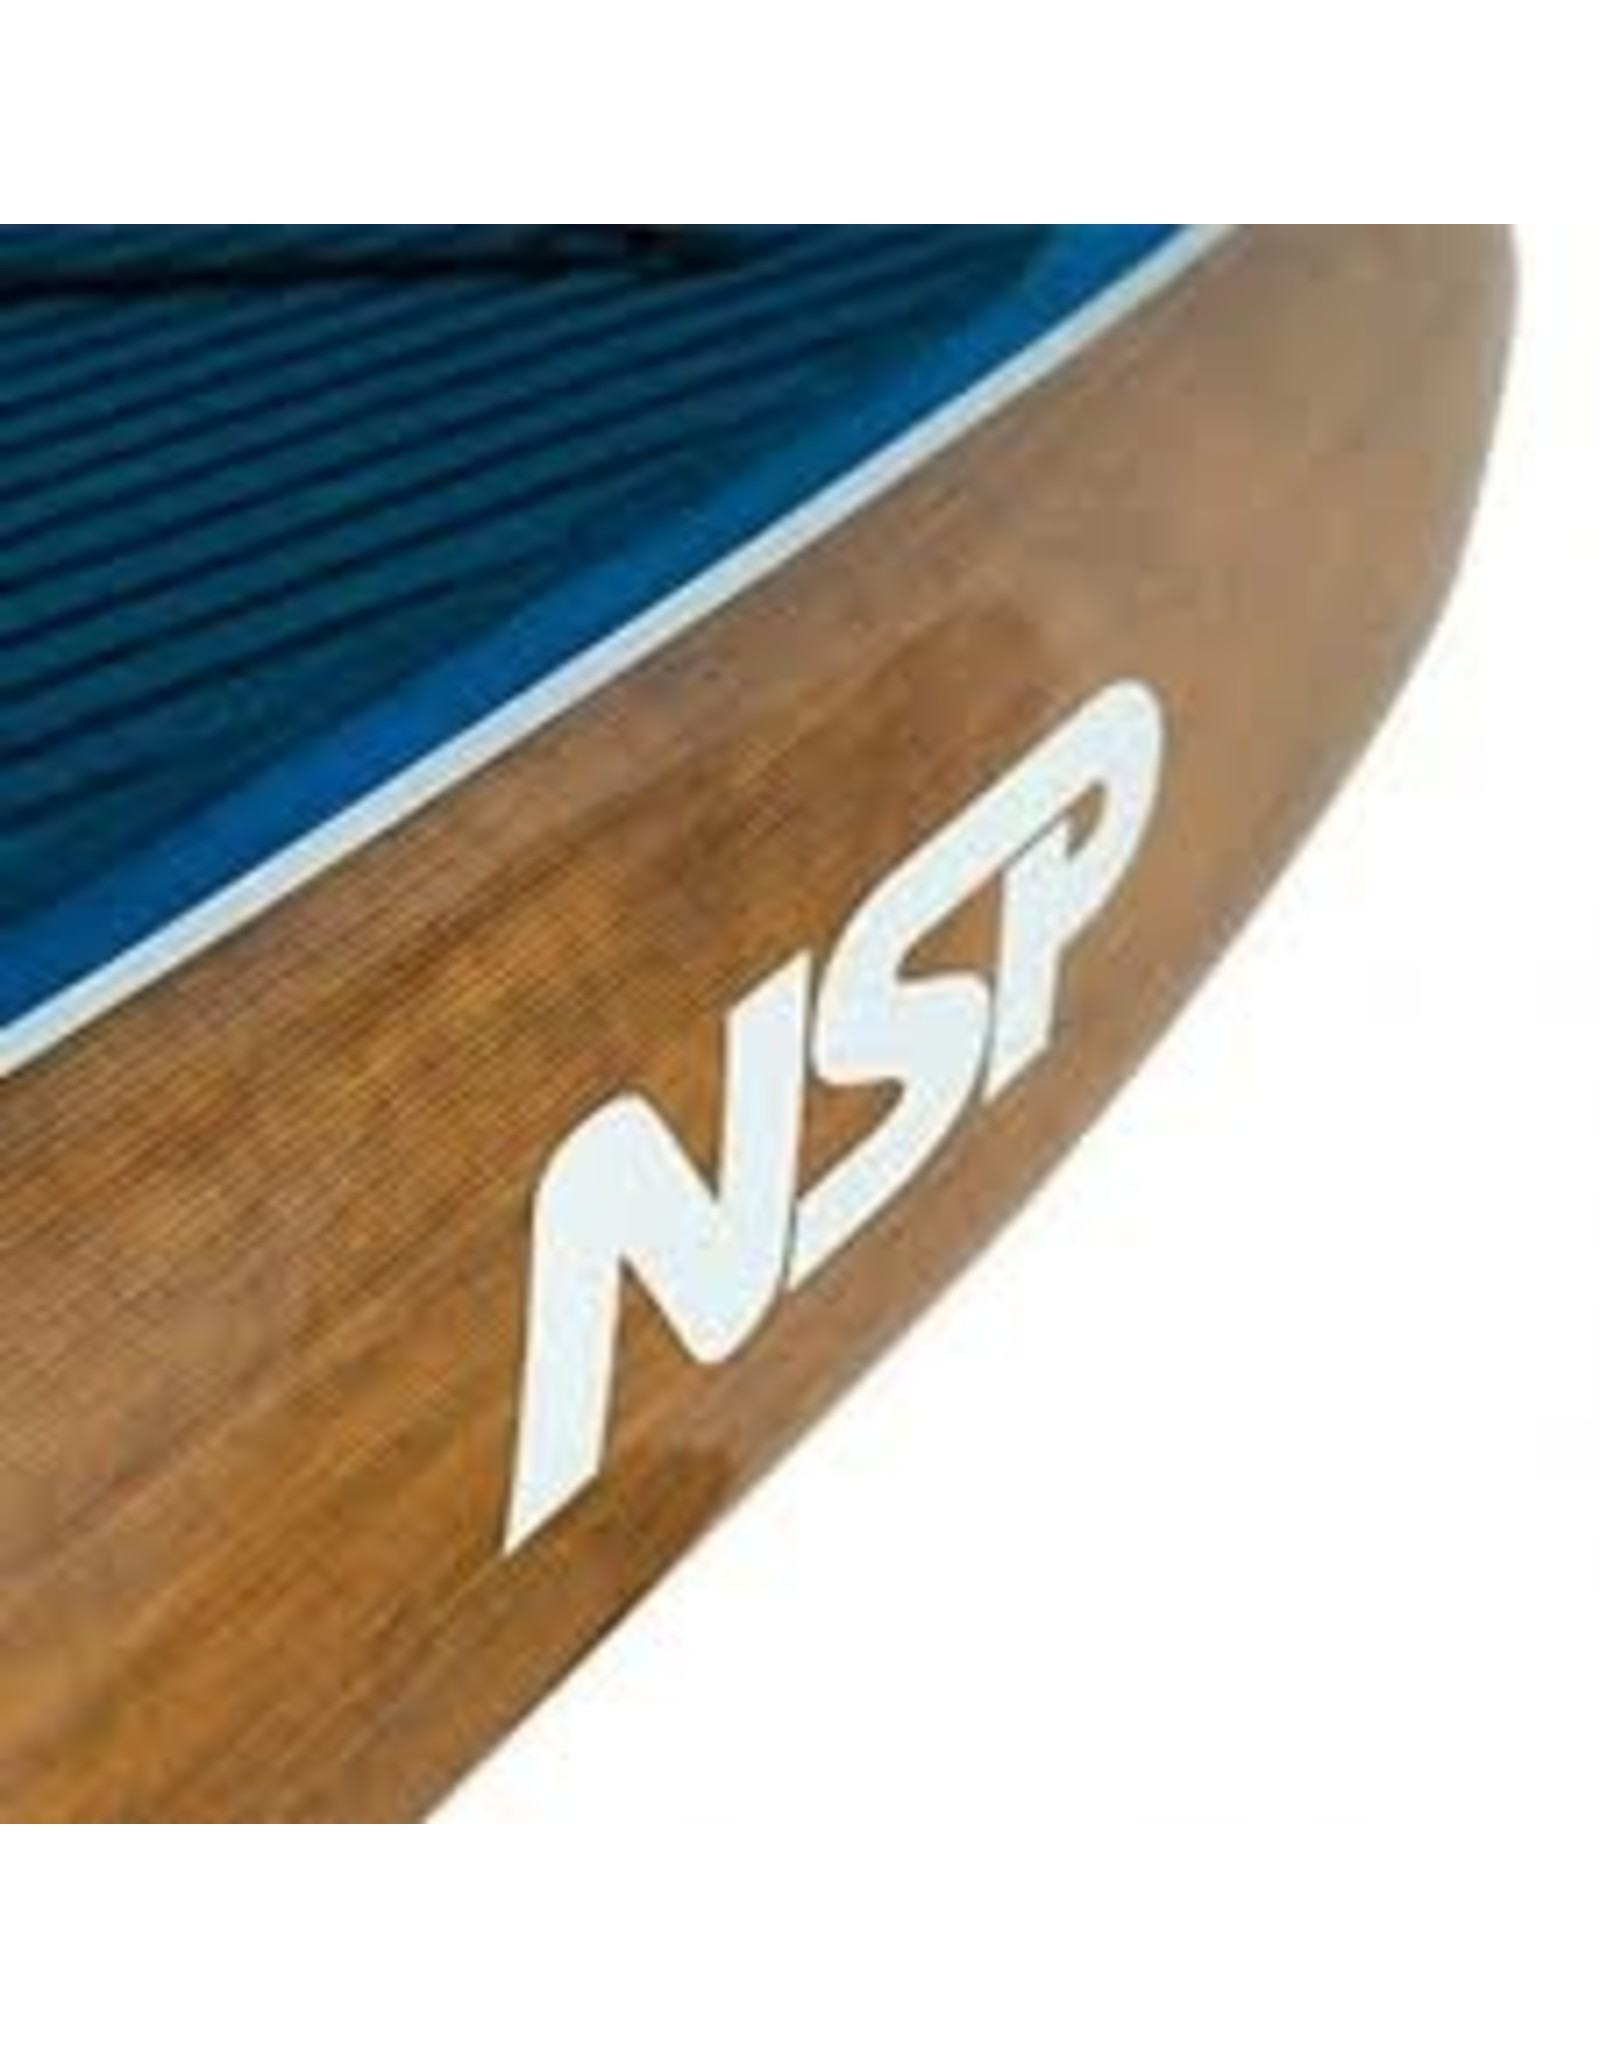 NSP Coco Performance Touring SUP